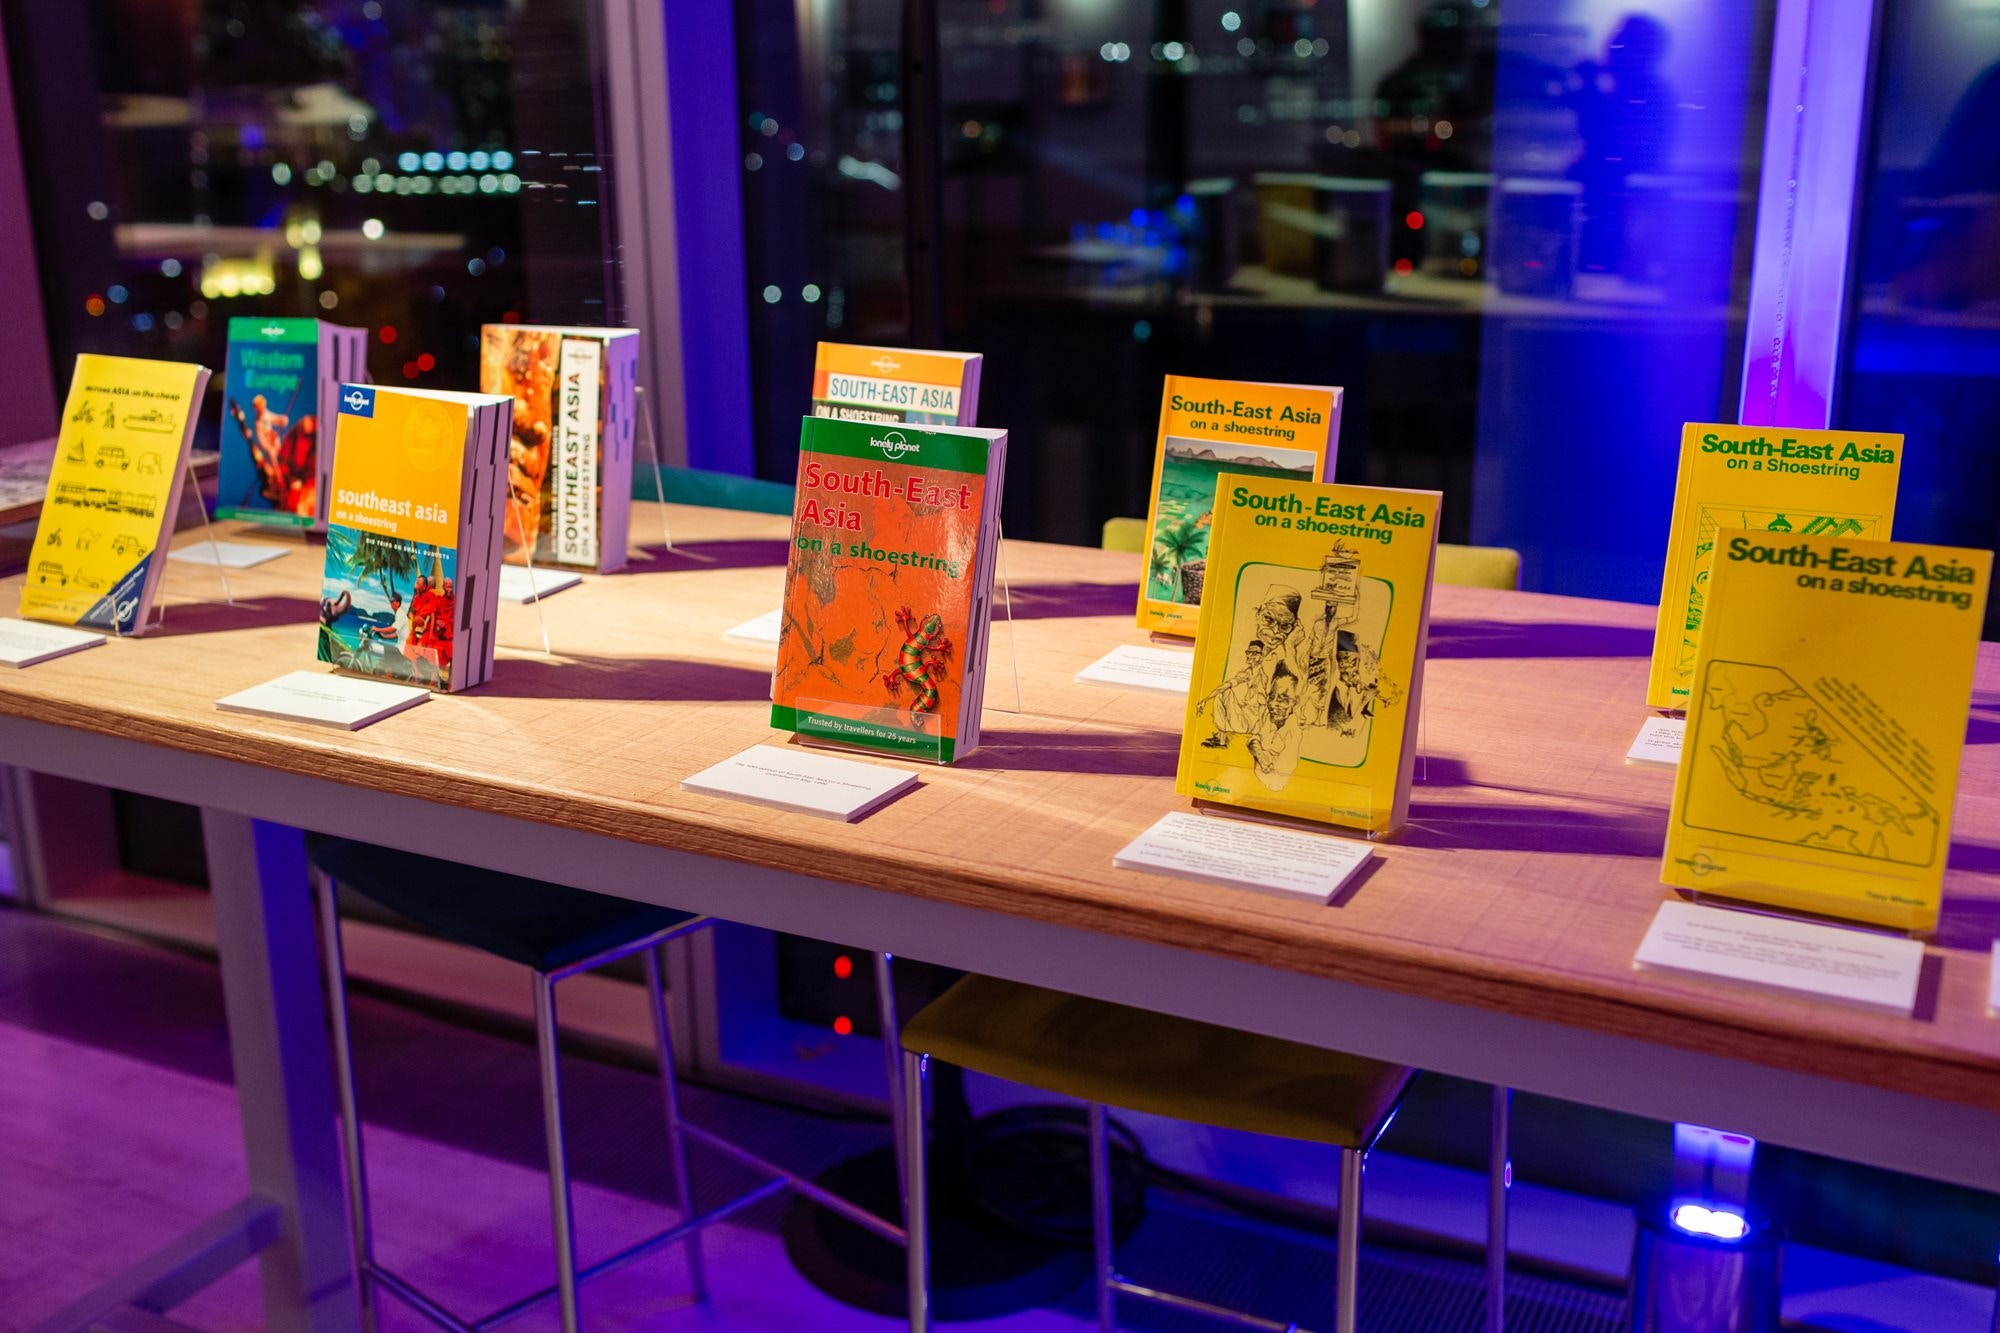 The many editions of South-East Asia on a shoestring on display at Lonely Planet's 45th birthday party in 2018 © Teofil Rewers Photography.